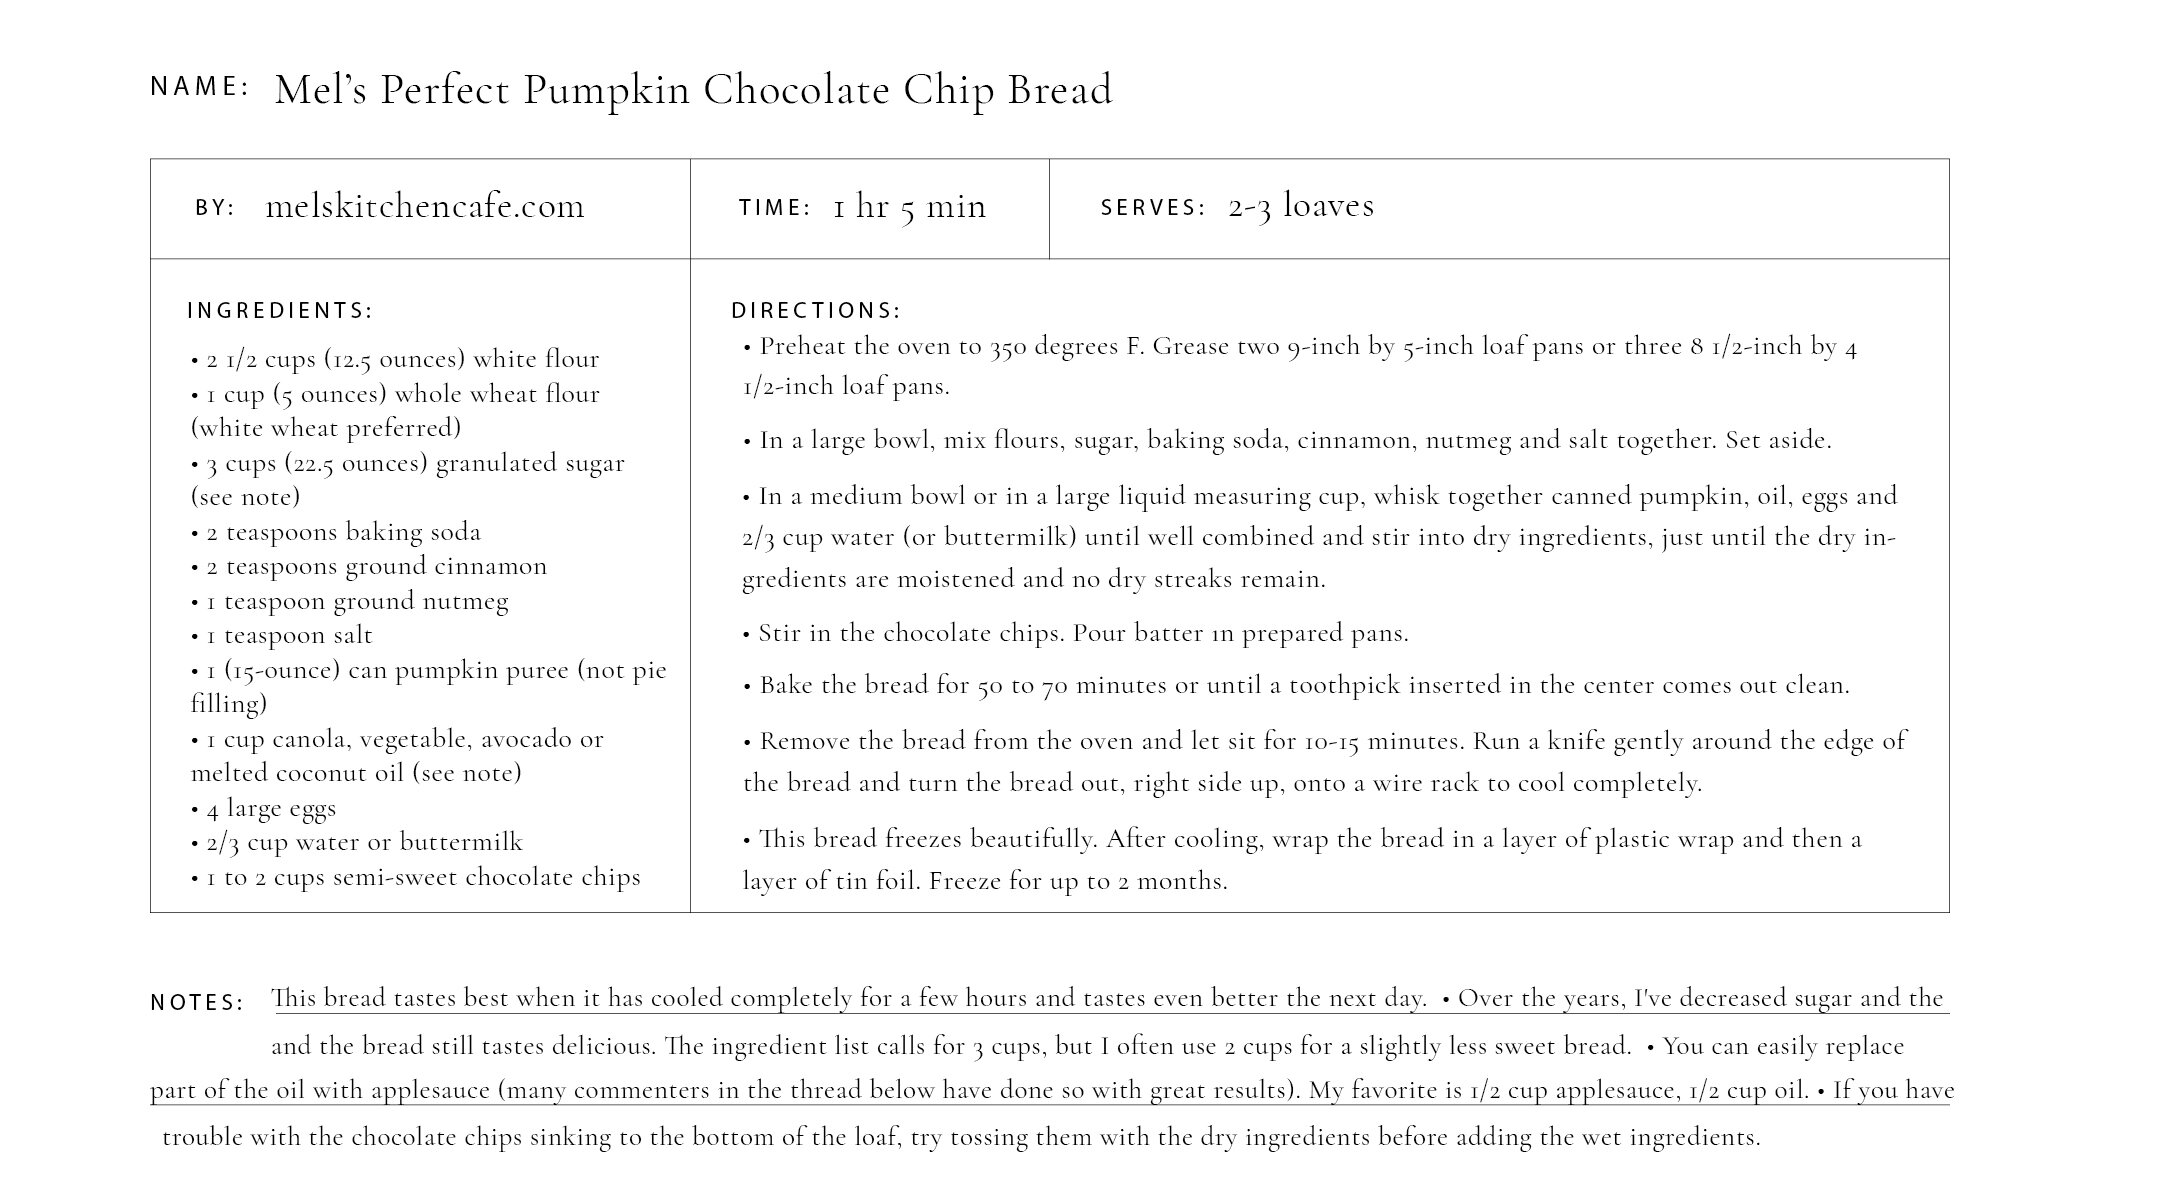 Downloadable Recipe Card of Mel's Perfect Pumpkin Chocolate Chip Bread for your Golden Coil customizable planner